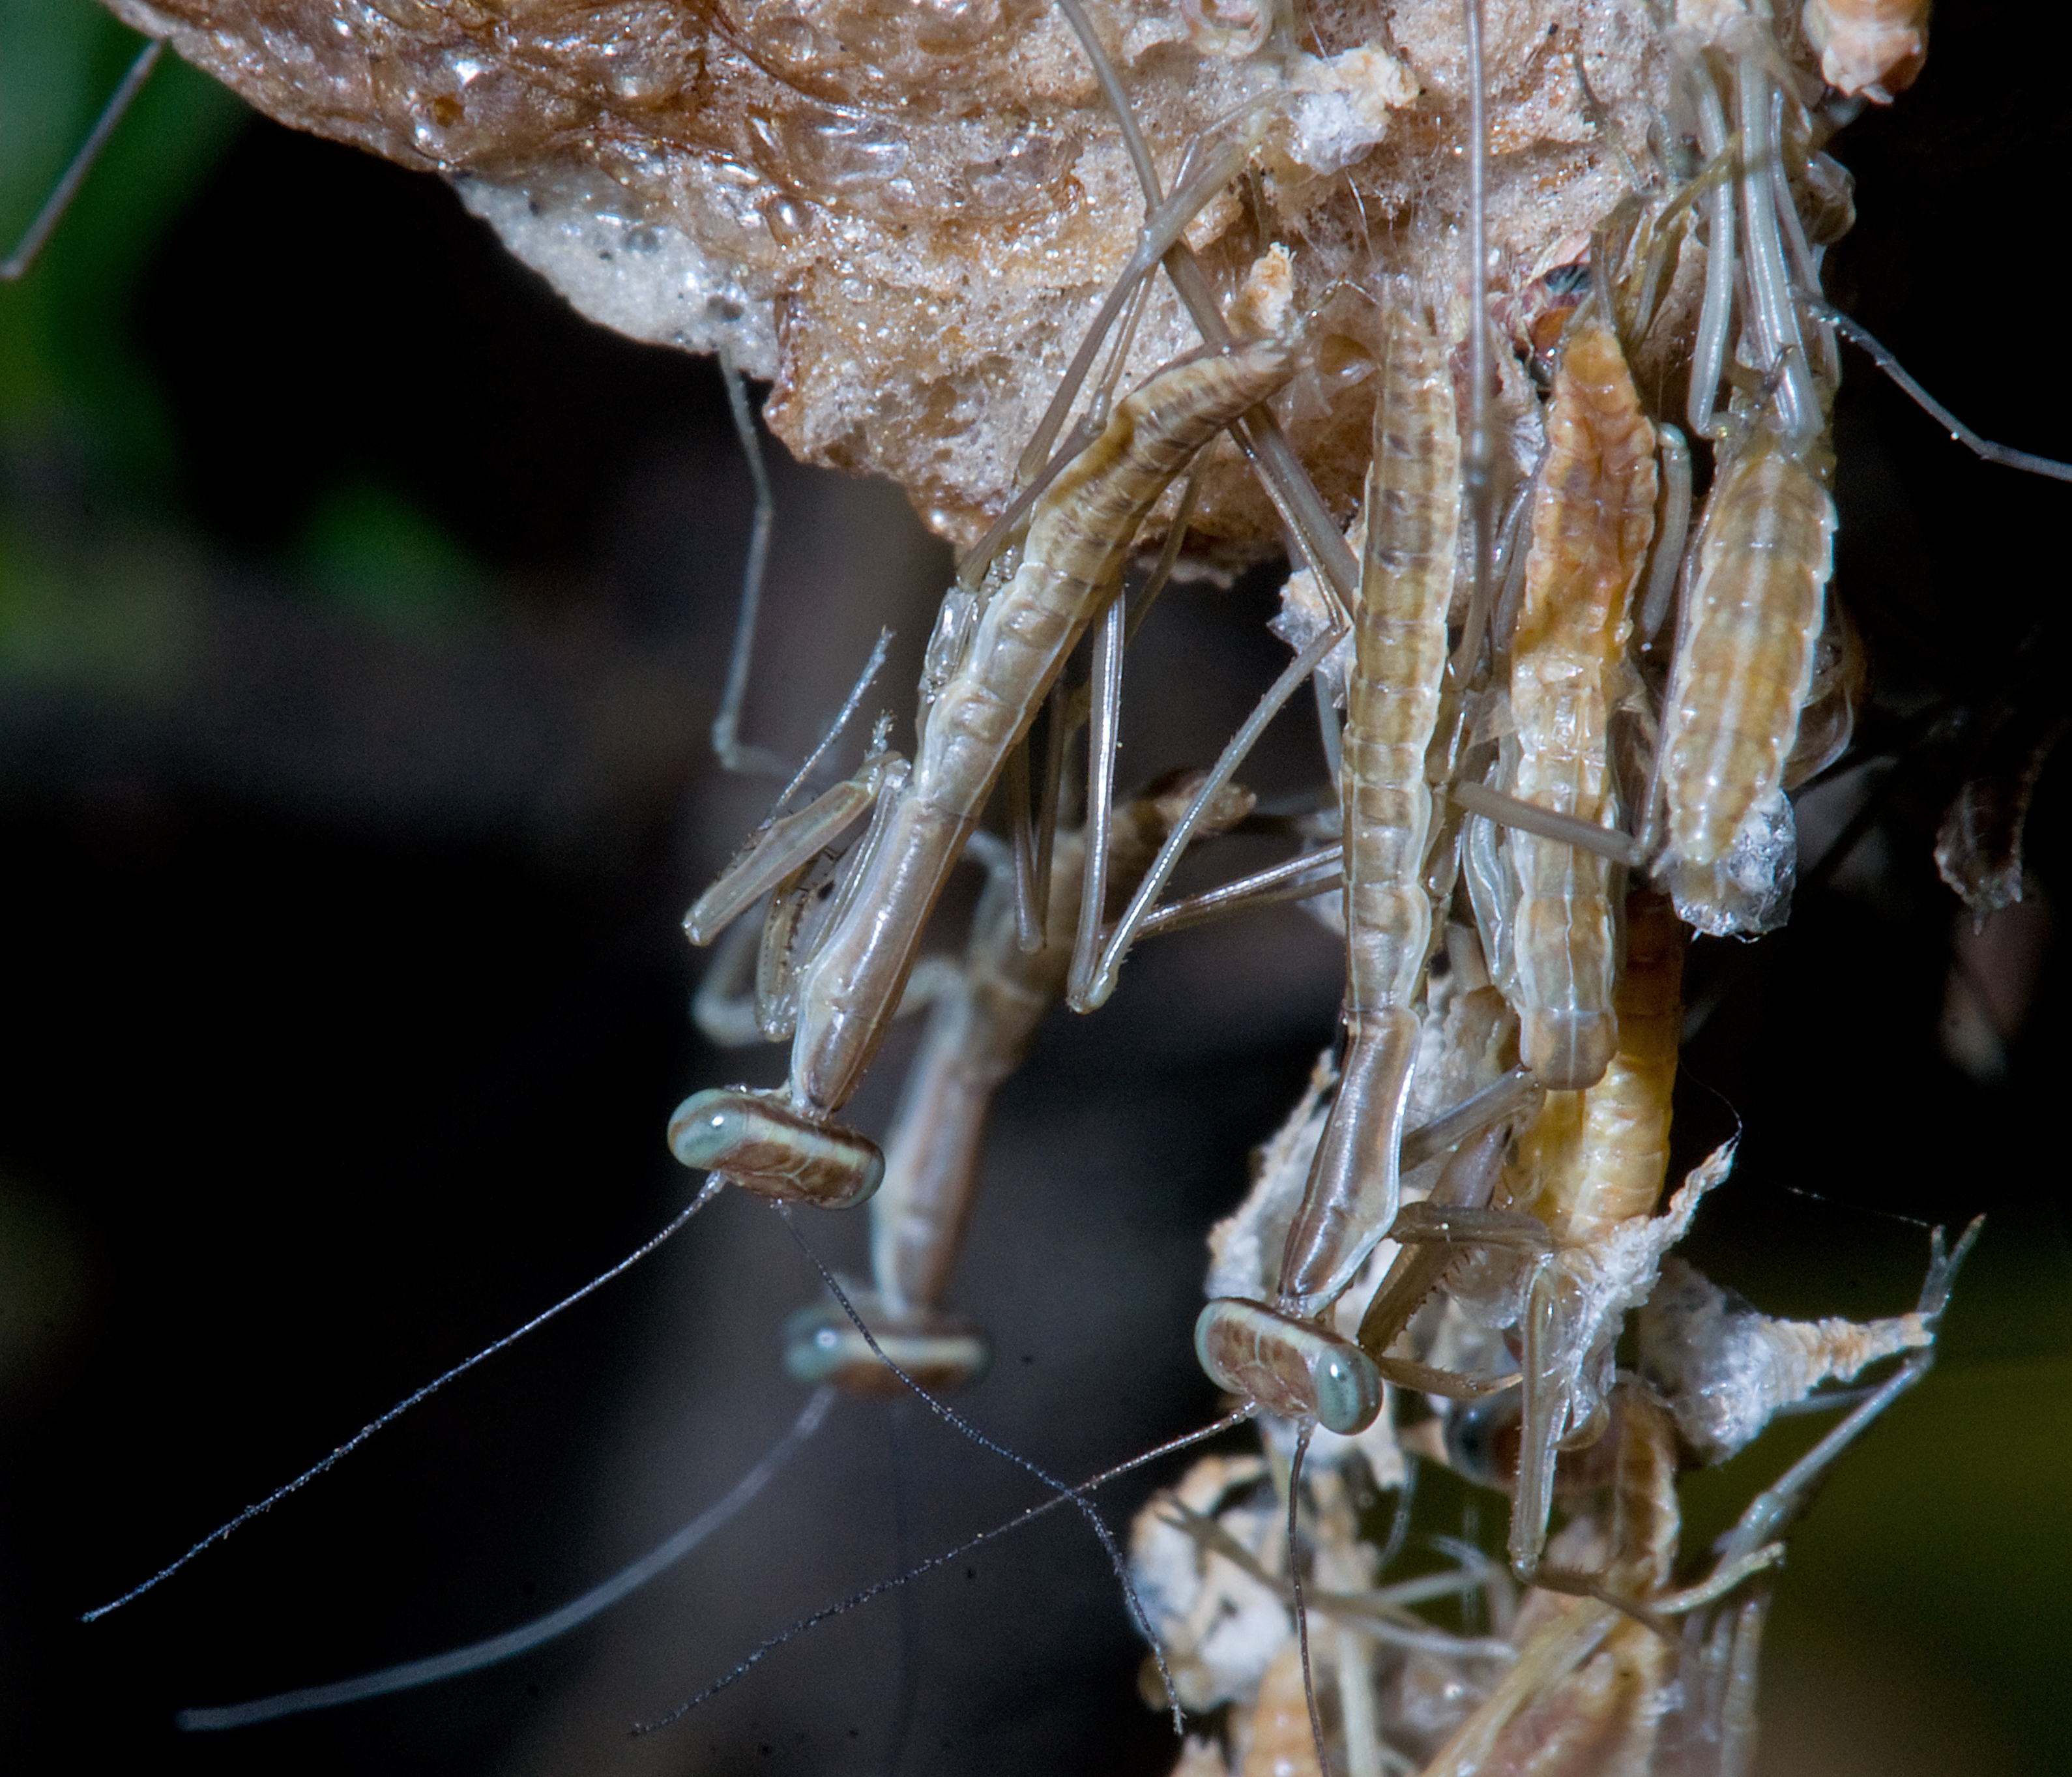 Image of Chinese mantis